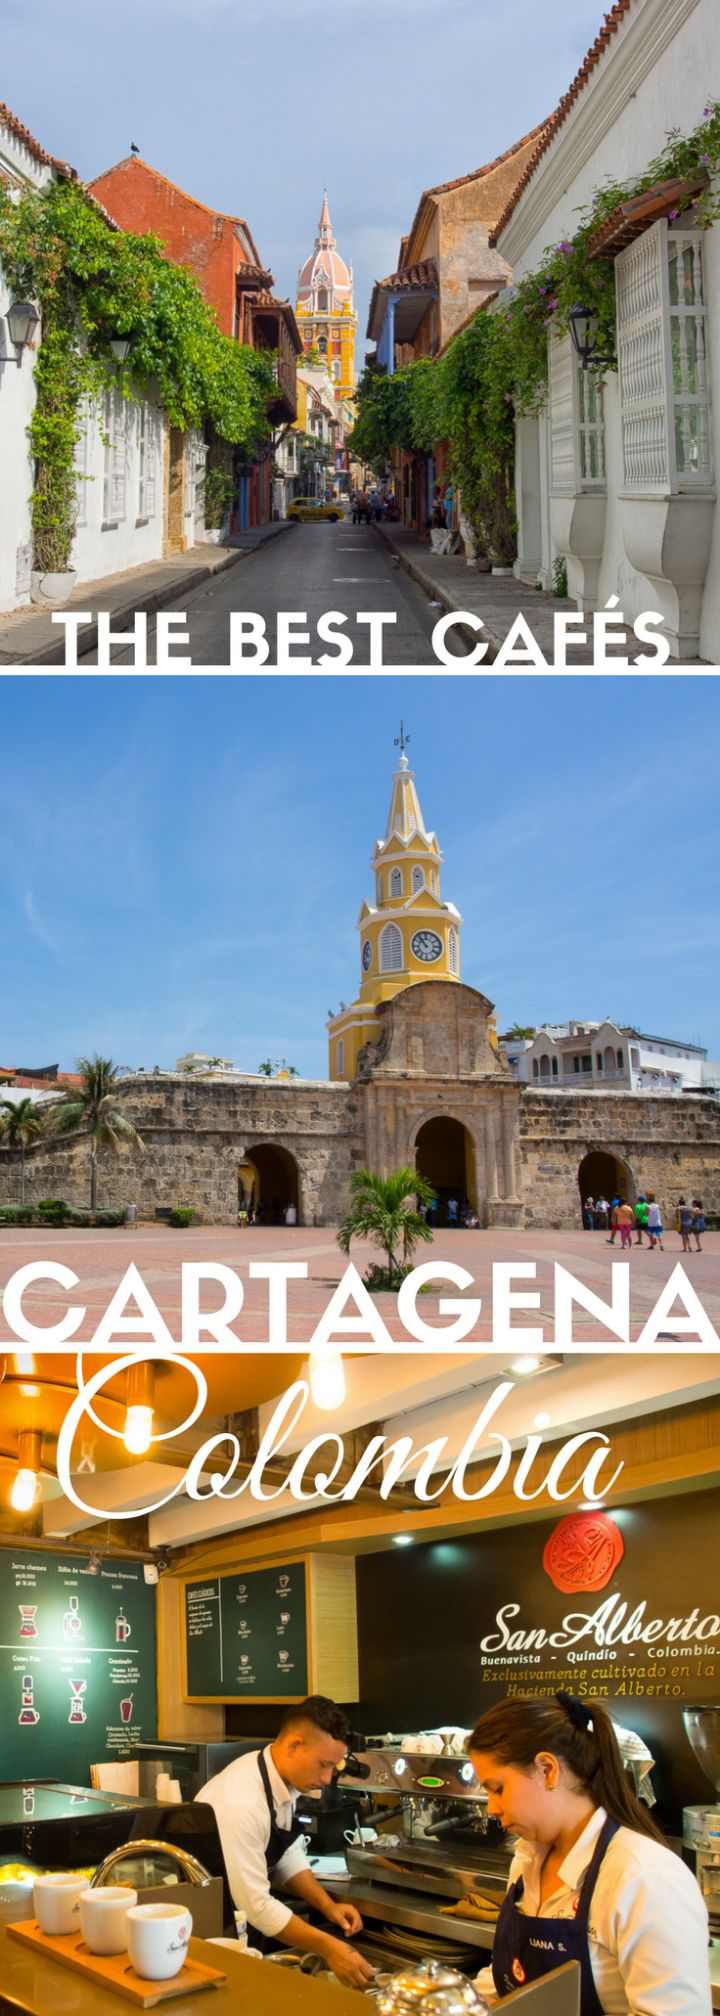 Taste the best coffee beans in Colombia inside the walled old city of Cartagena. Browse the best cafes for a specialty coffee geek!